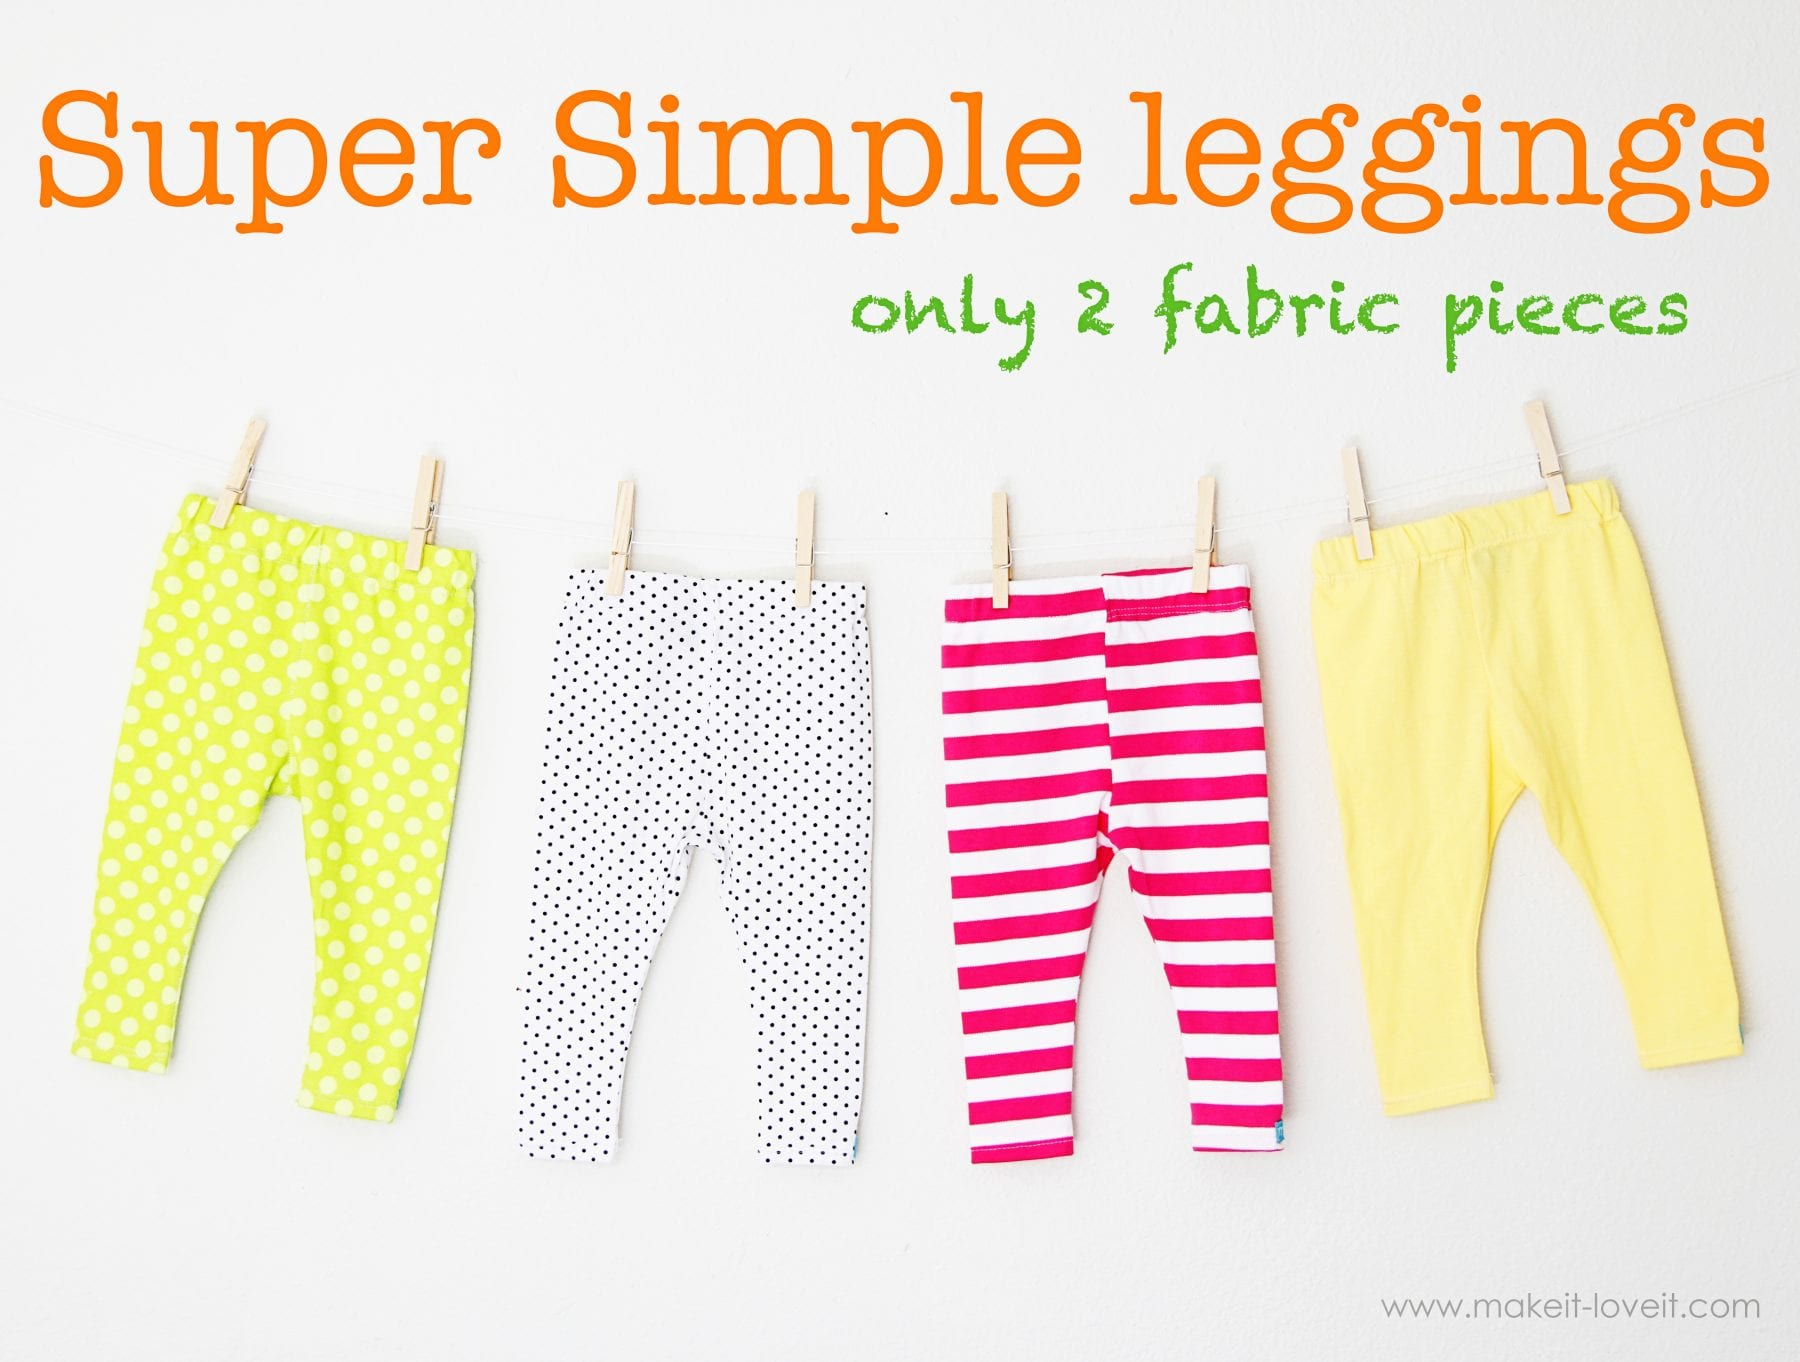 Super Simple Leggings: {only 2 fabric pieces}